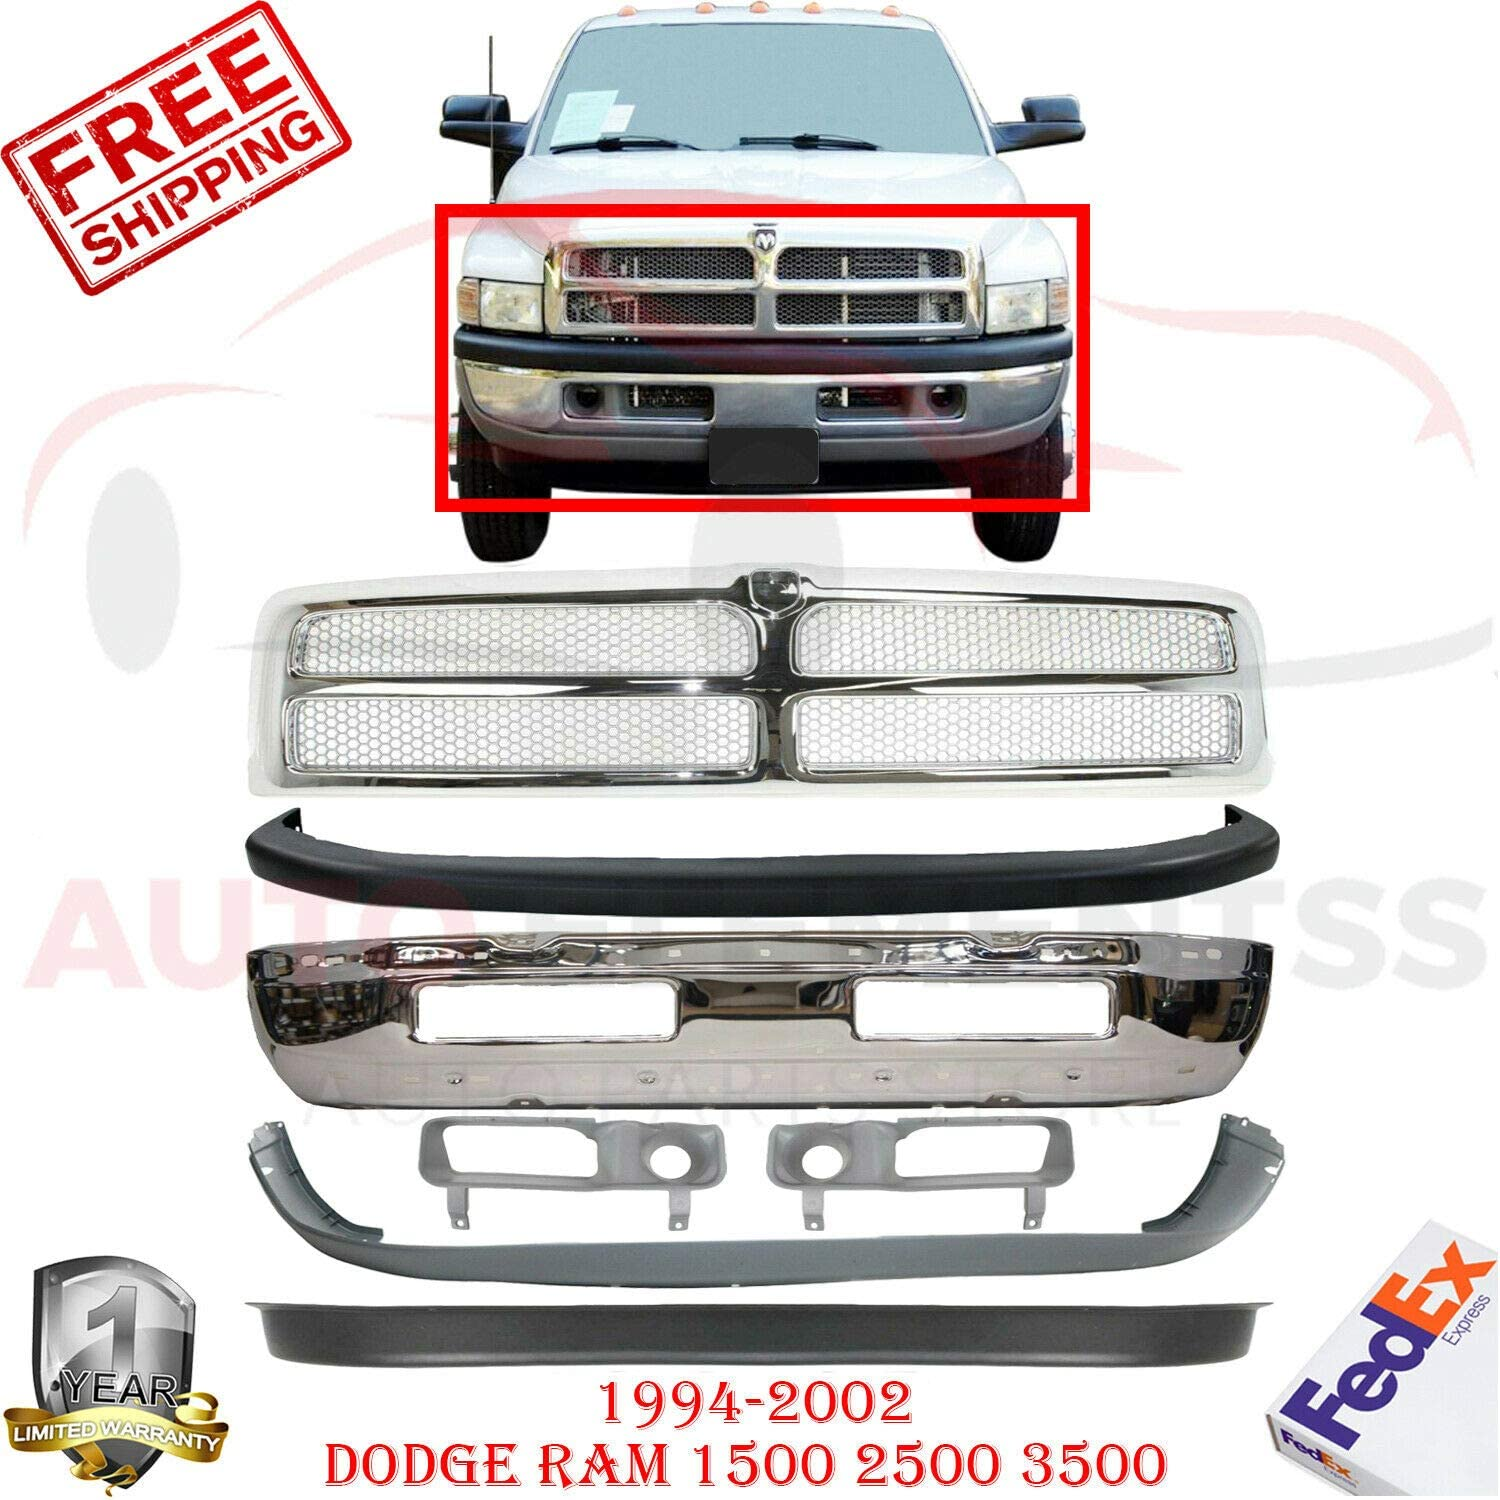 Upper Filler New Front Bumper Cover Textured Plastic Lower Valance For 1994-2002 Dodge Ram 1500 2500 3500 Direct Replacement 55076614AC 55076610AB 55274811 Lower Cover